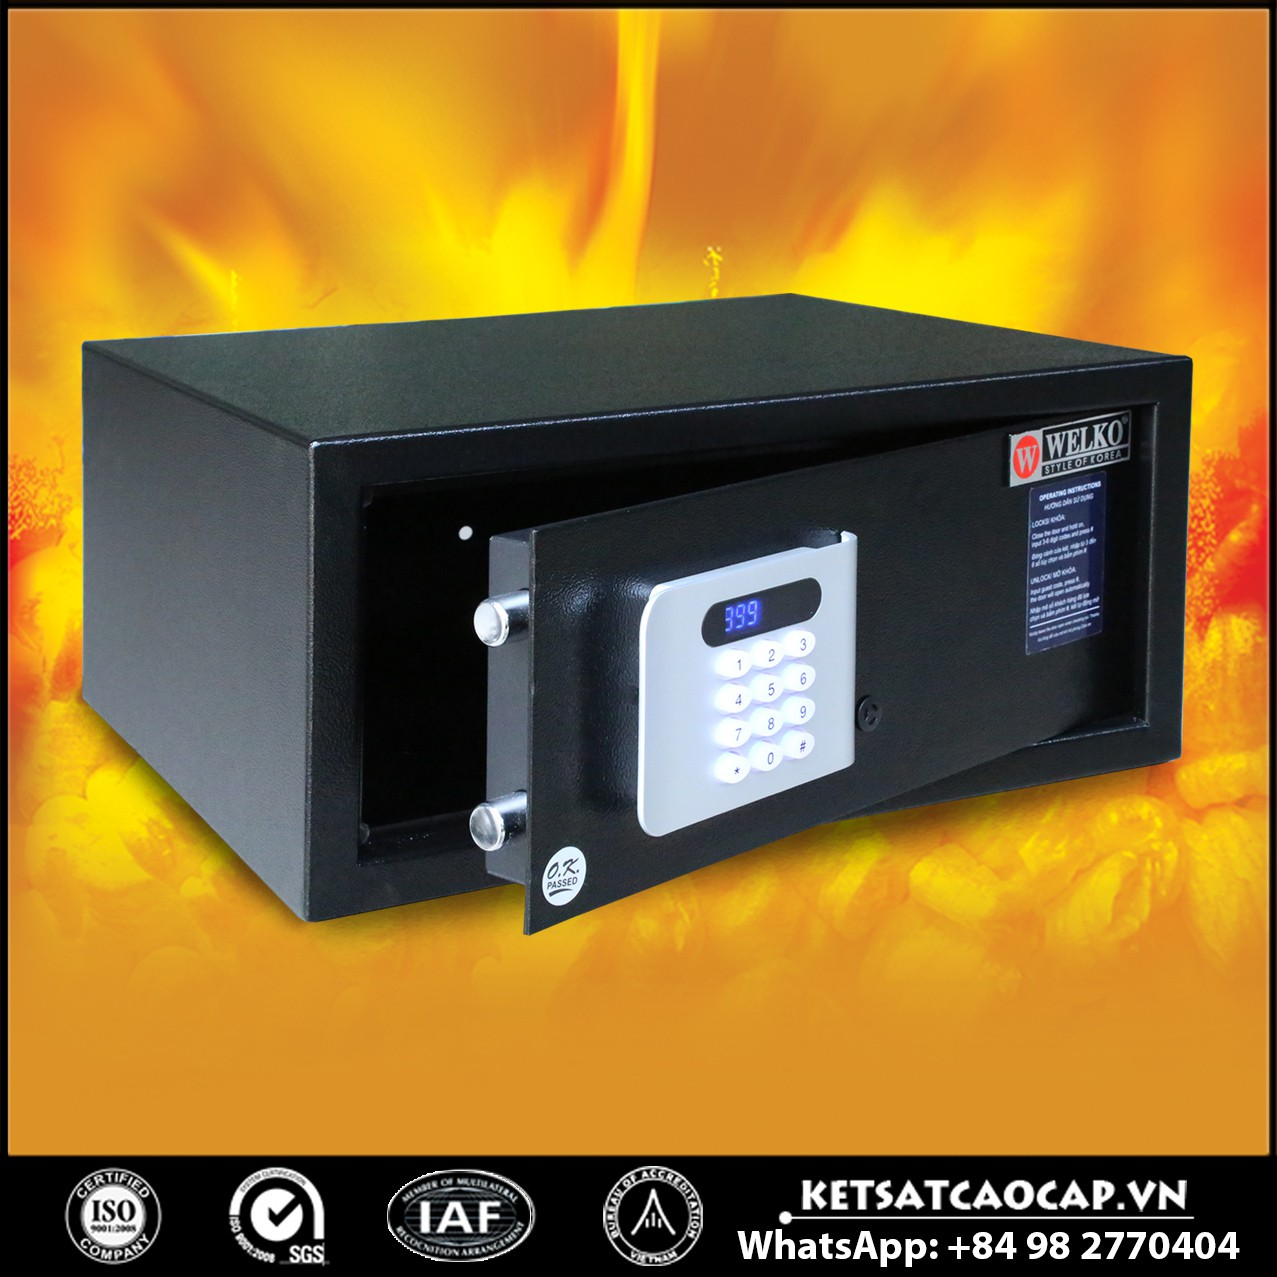 Hotels / In Room and Dorm Room Safes